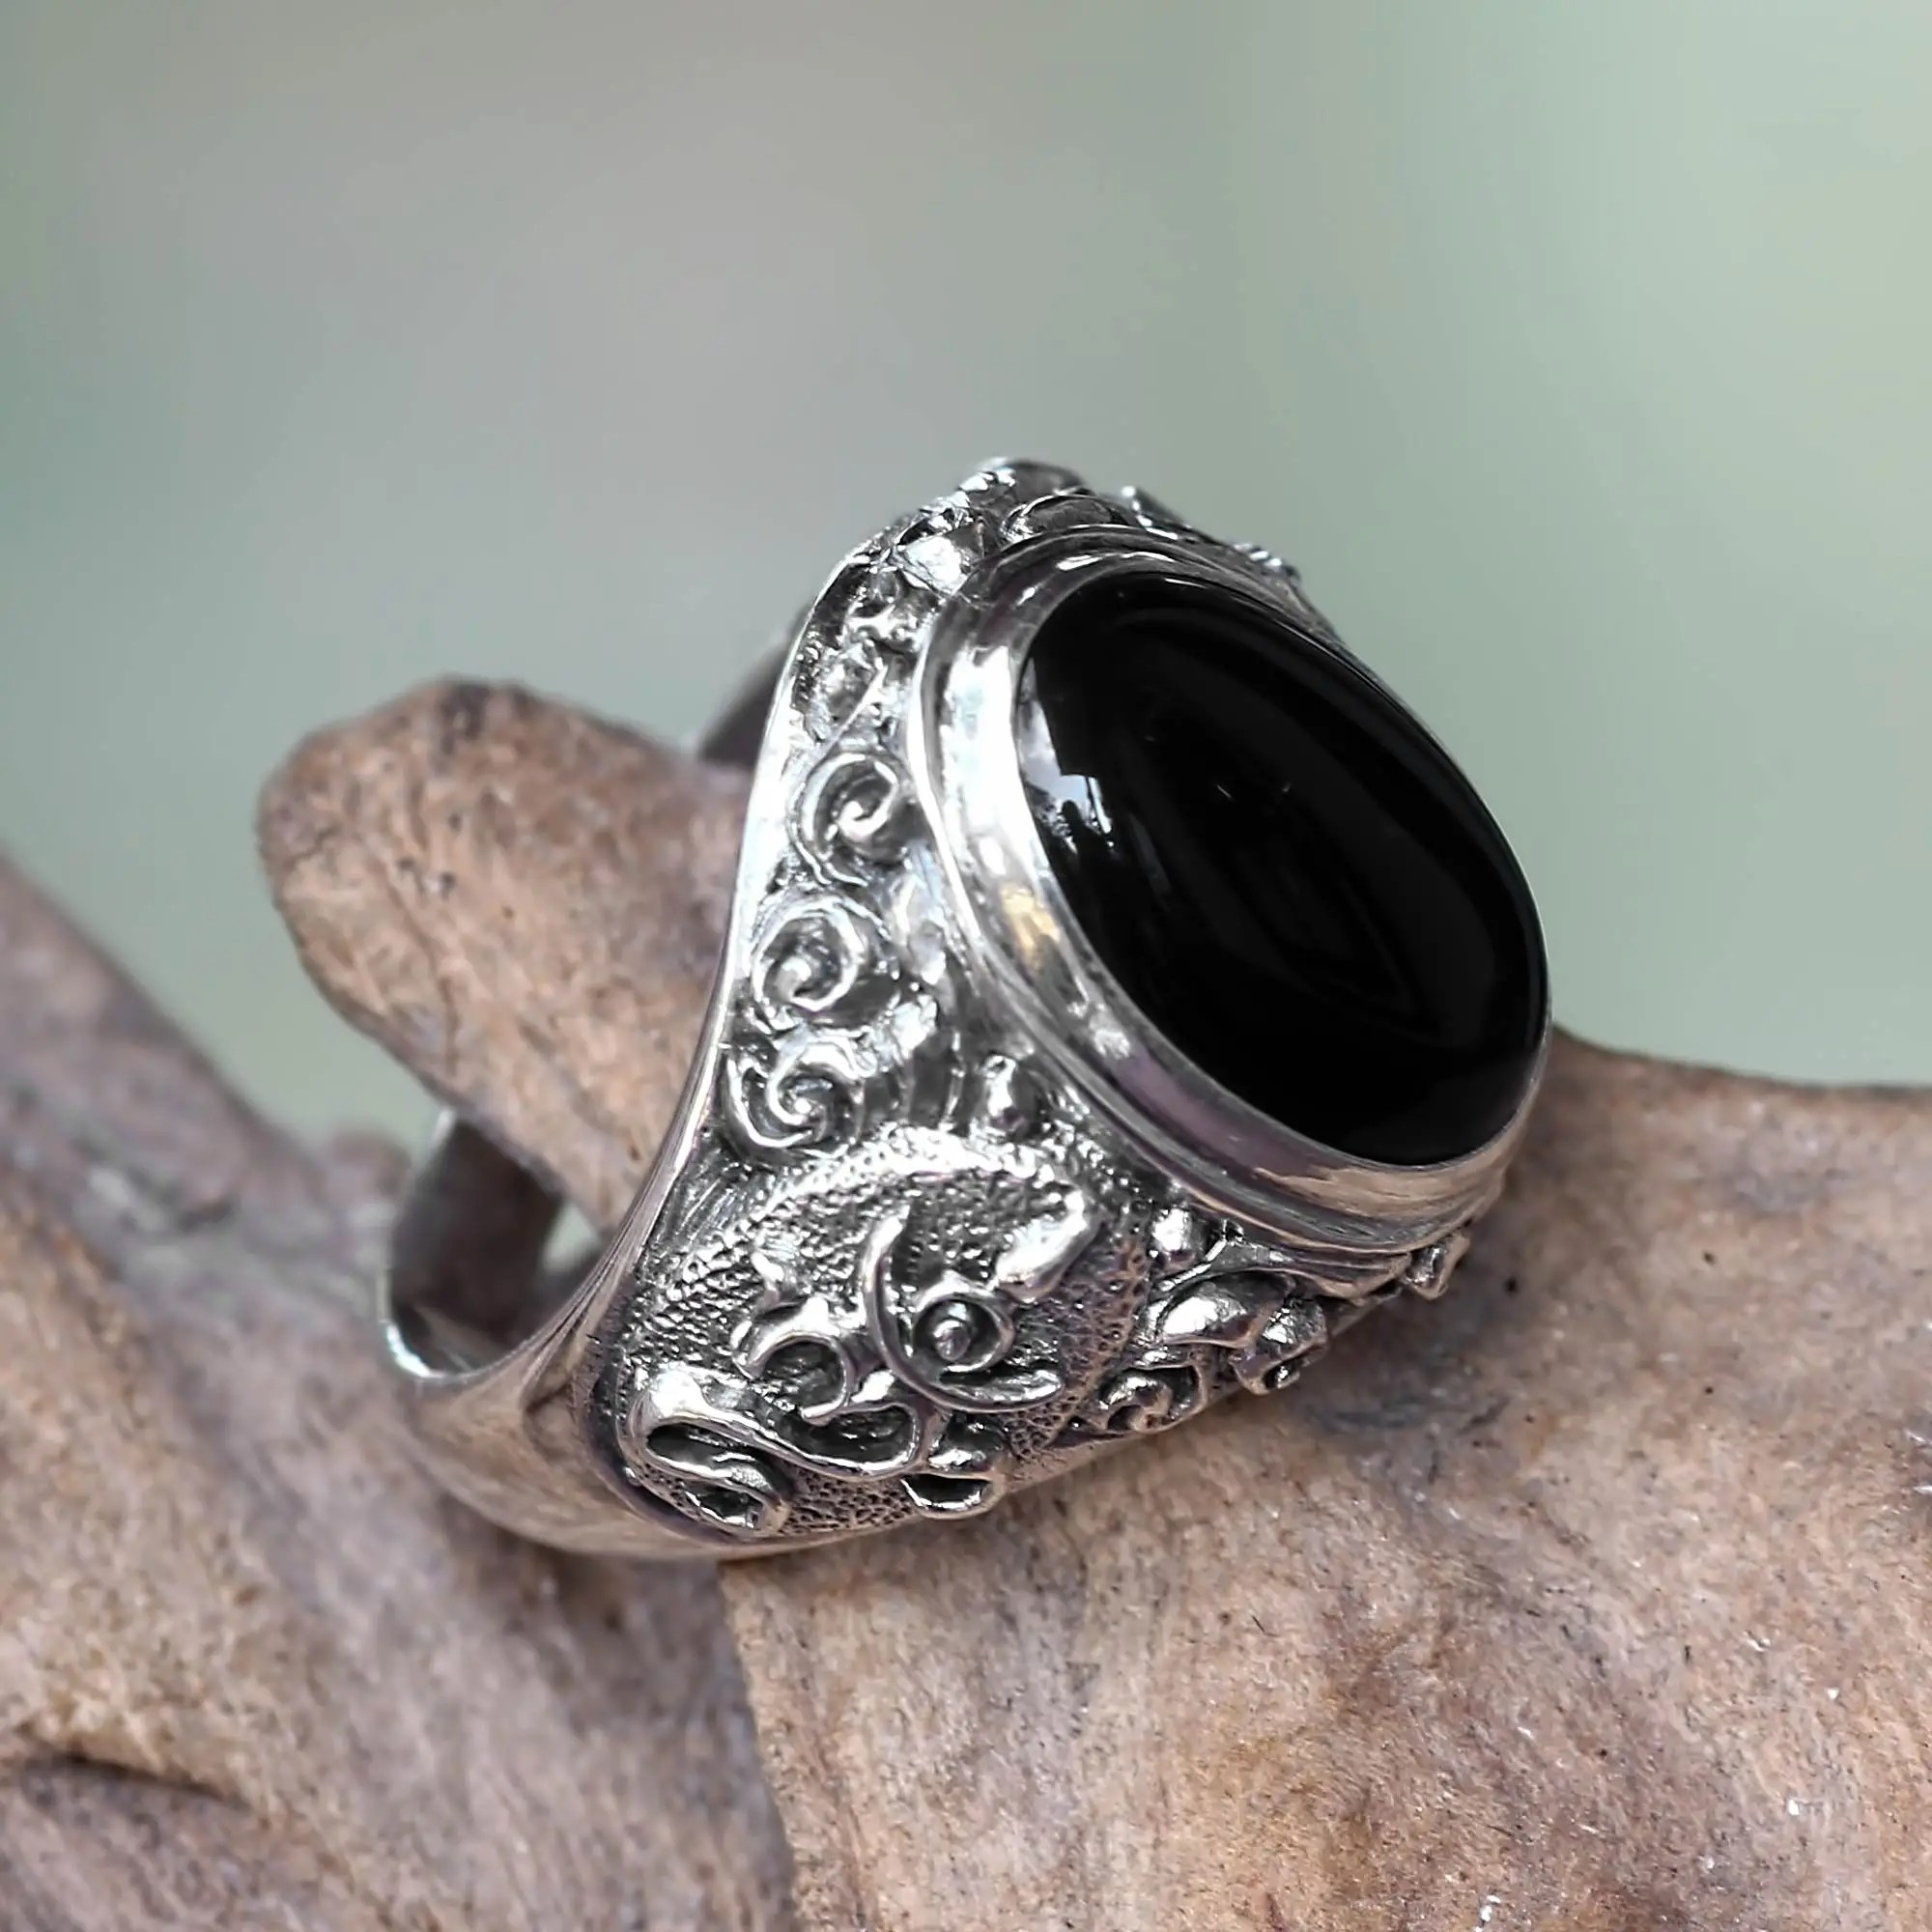 Unicef UK Market Handcrafted Onyx And Sterling Silver Om